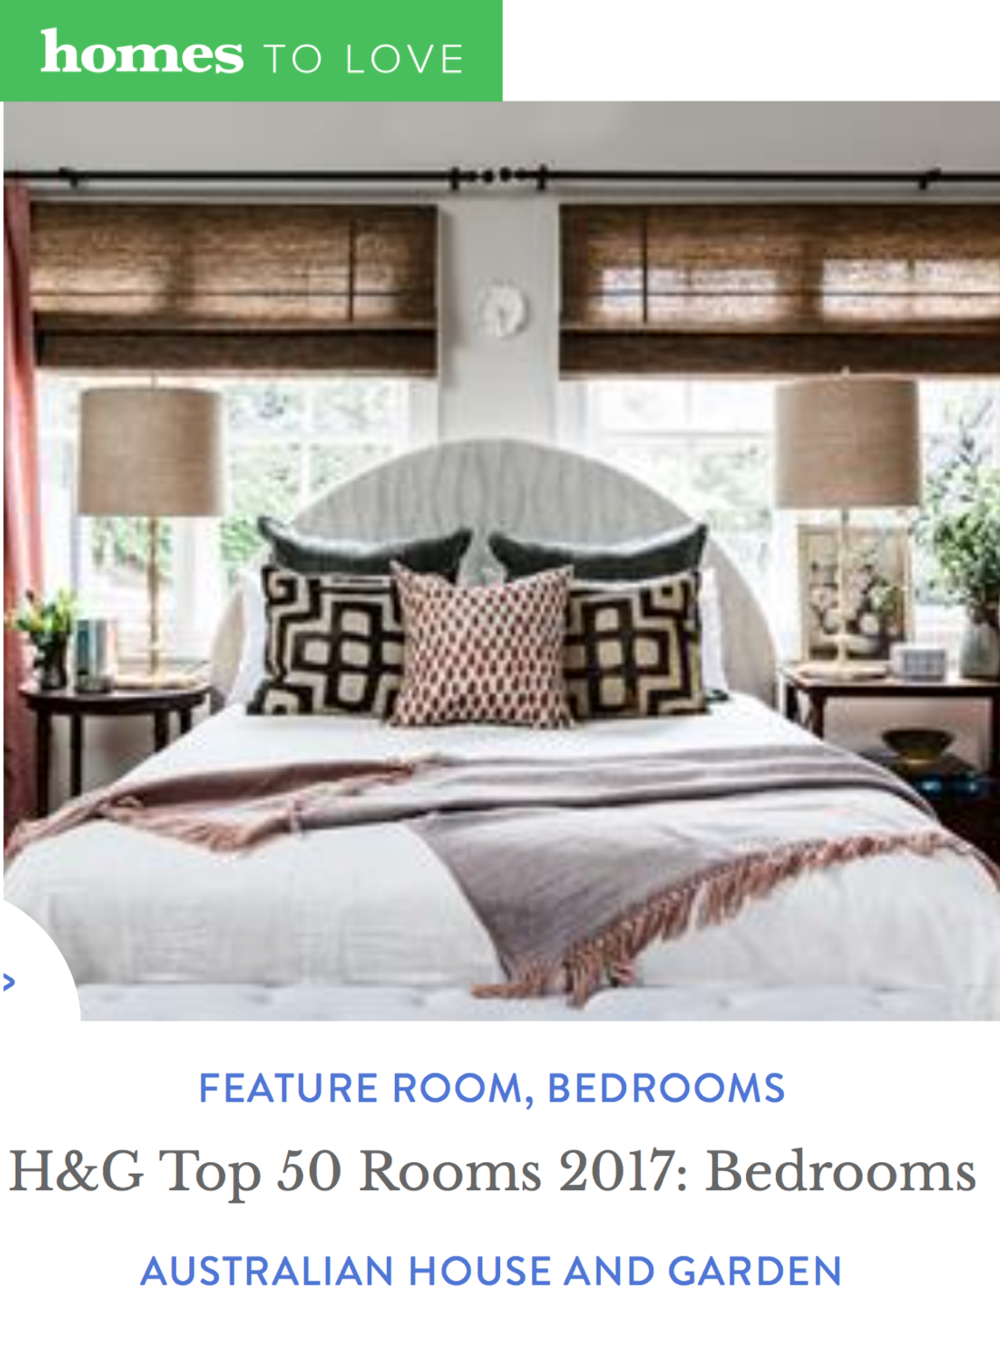 HOMES TO LOVE  - October 2017  H&G Top 50 Rooms 2017: Bedrooms